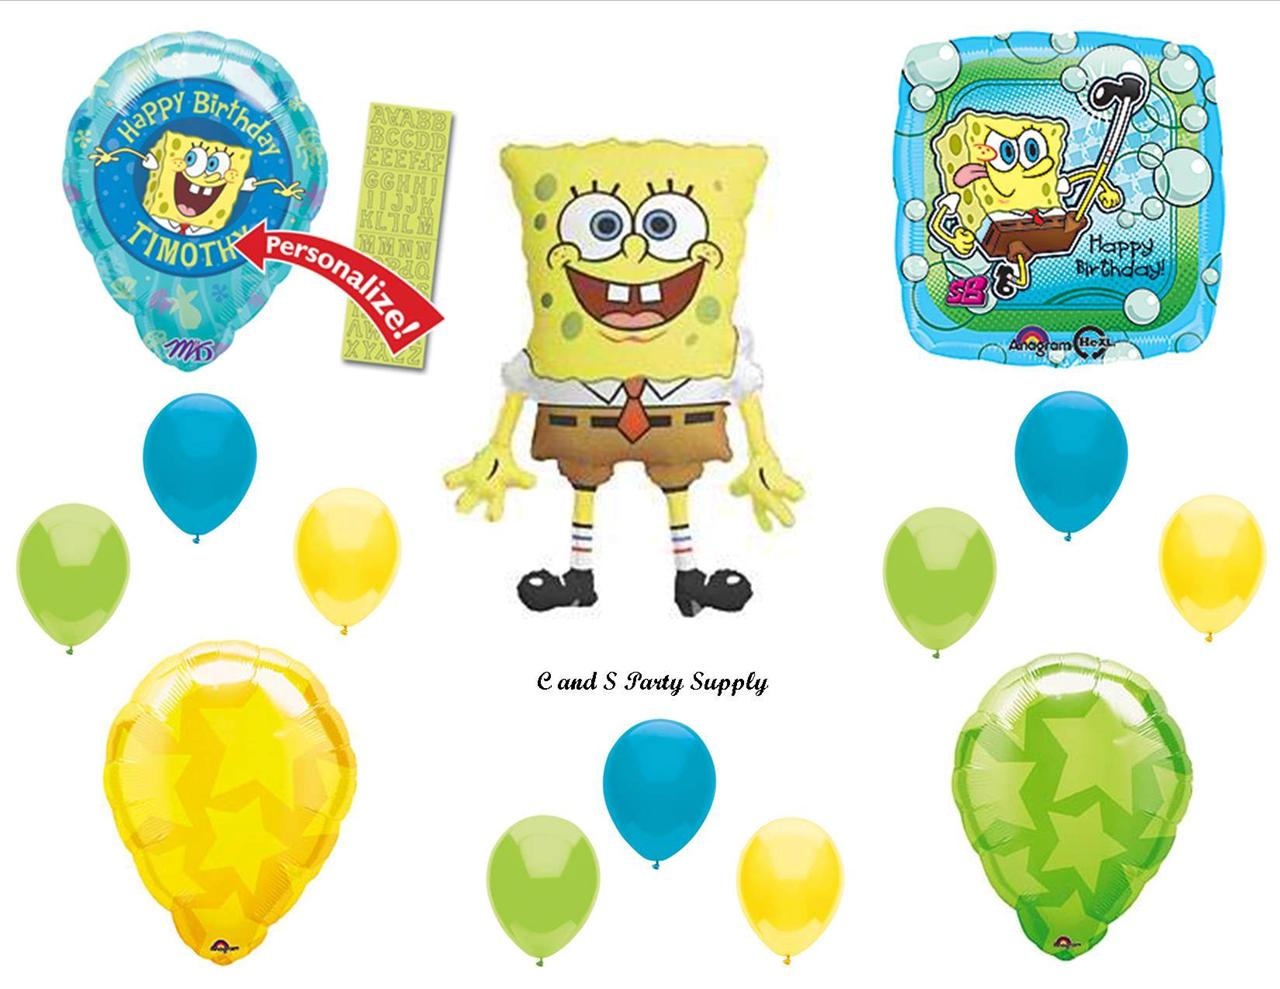 Spongebob personalized happy birthday party balloons for Balloon decoration equipment